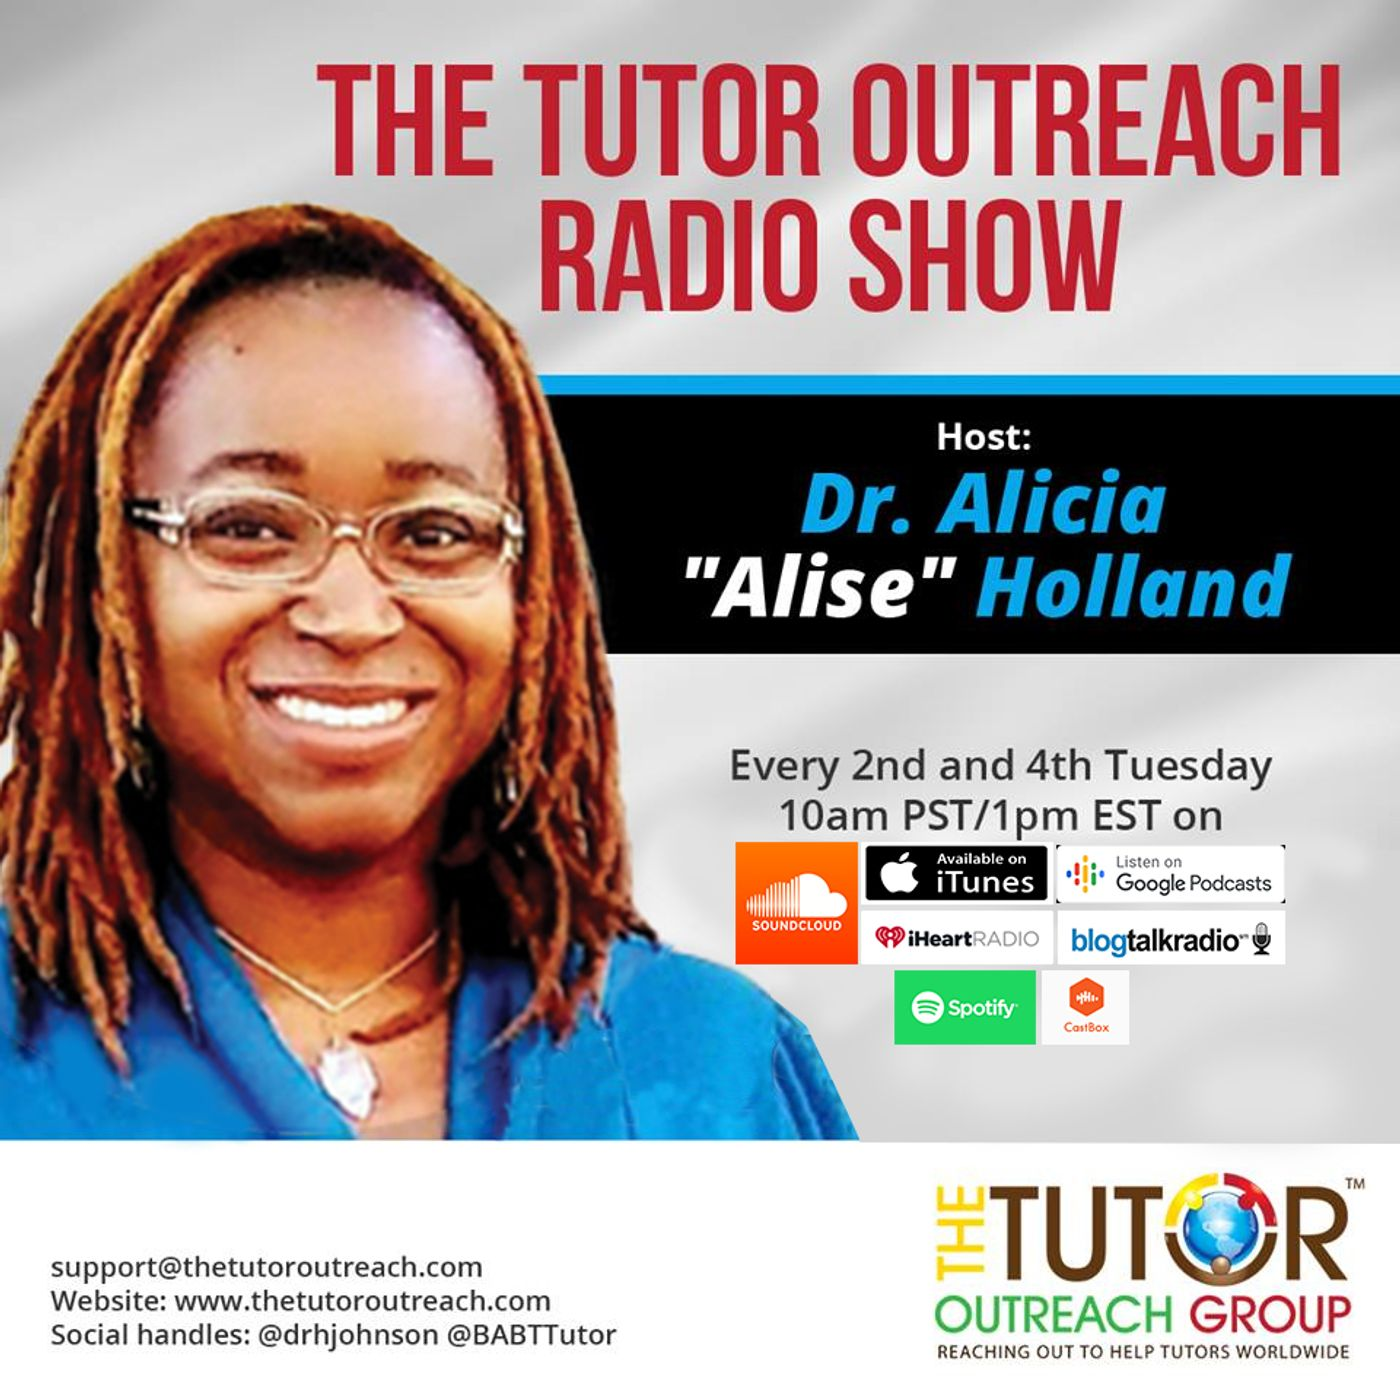 Opening and Closing Online Tutoring Sessions with Your Clients